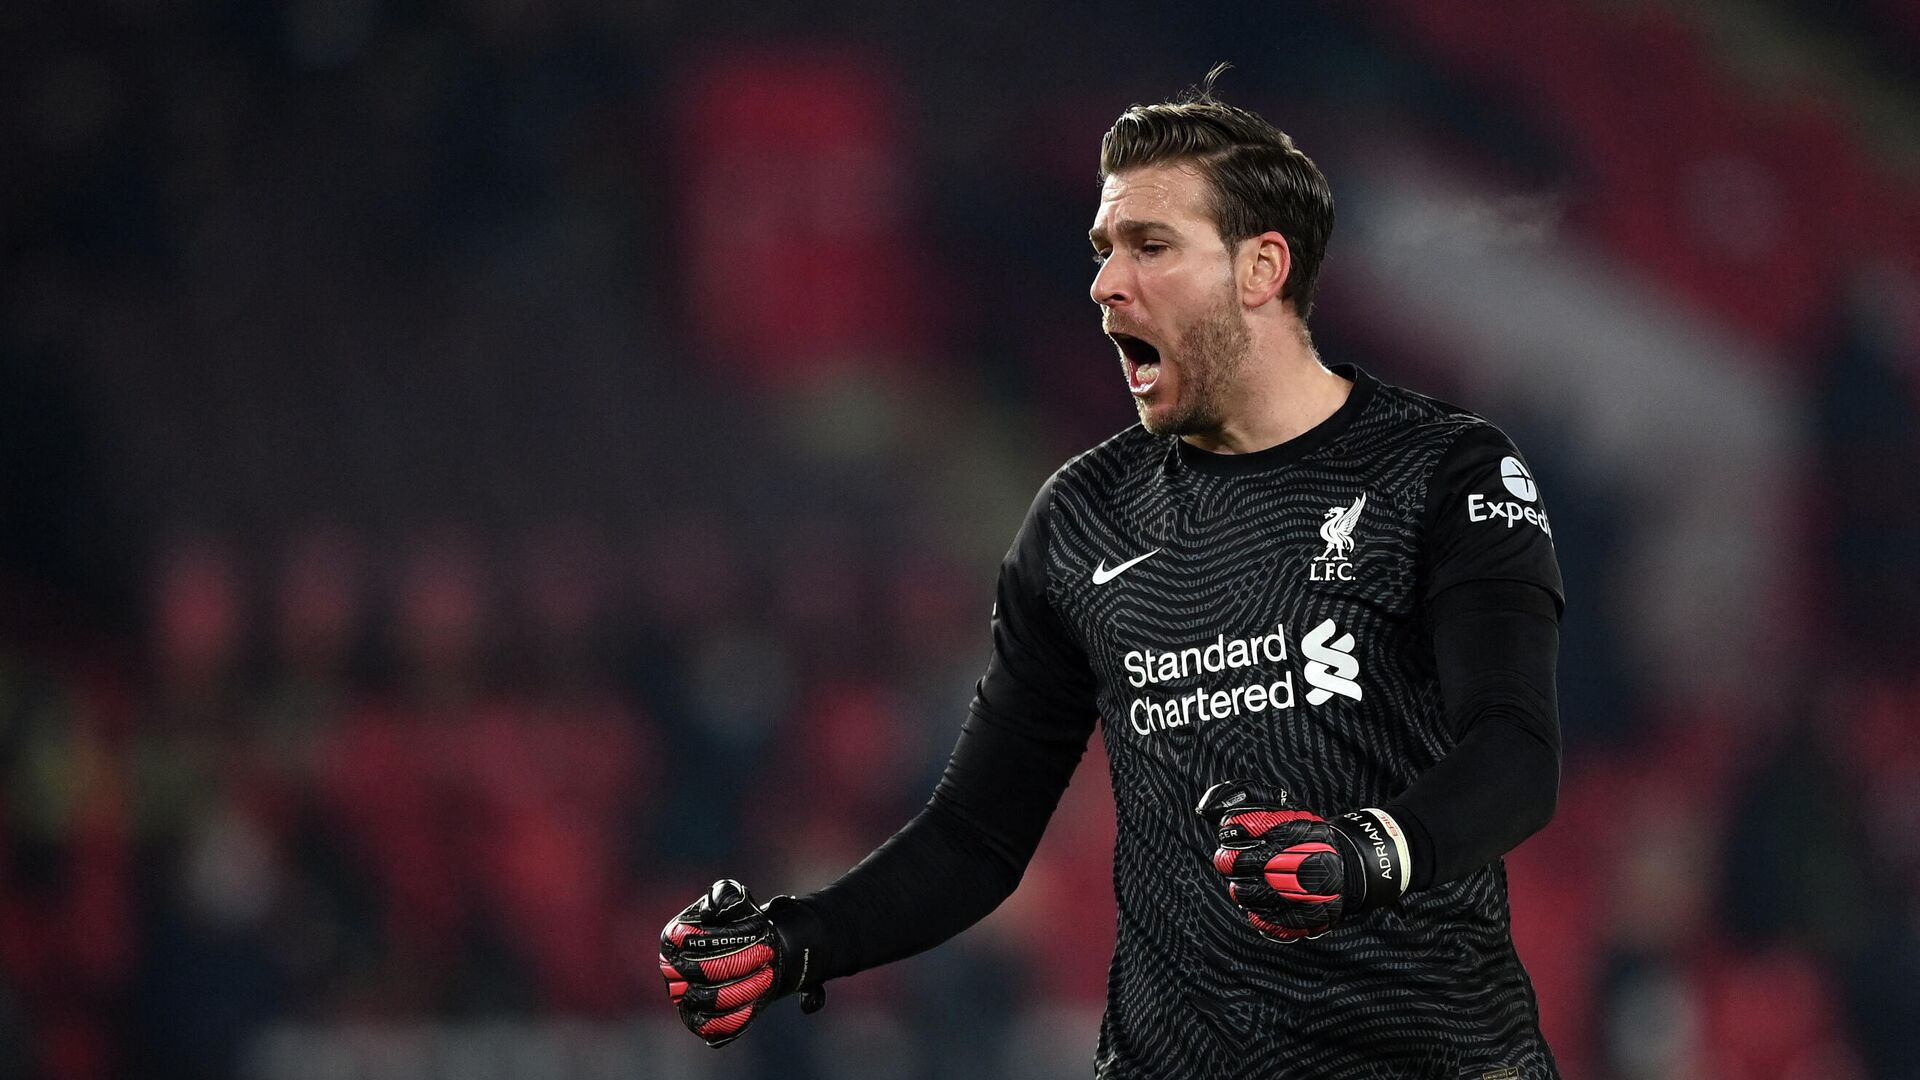 Liverpool's Spanish goalkeeper Adrian reacts after the second goal during the English Premier League football match between Sheffield United and Liverpool at Bramall Lane in Sheffield, northern England on February 28, 2021. (Photo by Shaun Botterill / POOL / AFP) / RESTRICTED TO EDITORIAL USE. No use with unauthorized audio, video, data, fixture lists, club/league logos or 'live' services. Online in-match use limited to 120 images. An additional 40 images may be used in extra time. No video emulation. Social media in-match use limited to 120 images. An additional 40 images may be used in extra time. No use in betting publications, games or single club/league/player publications. /  - РИА Новости, 1920, 14.06.2021